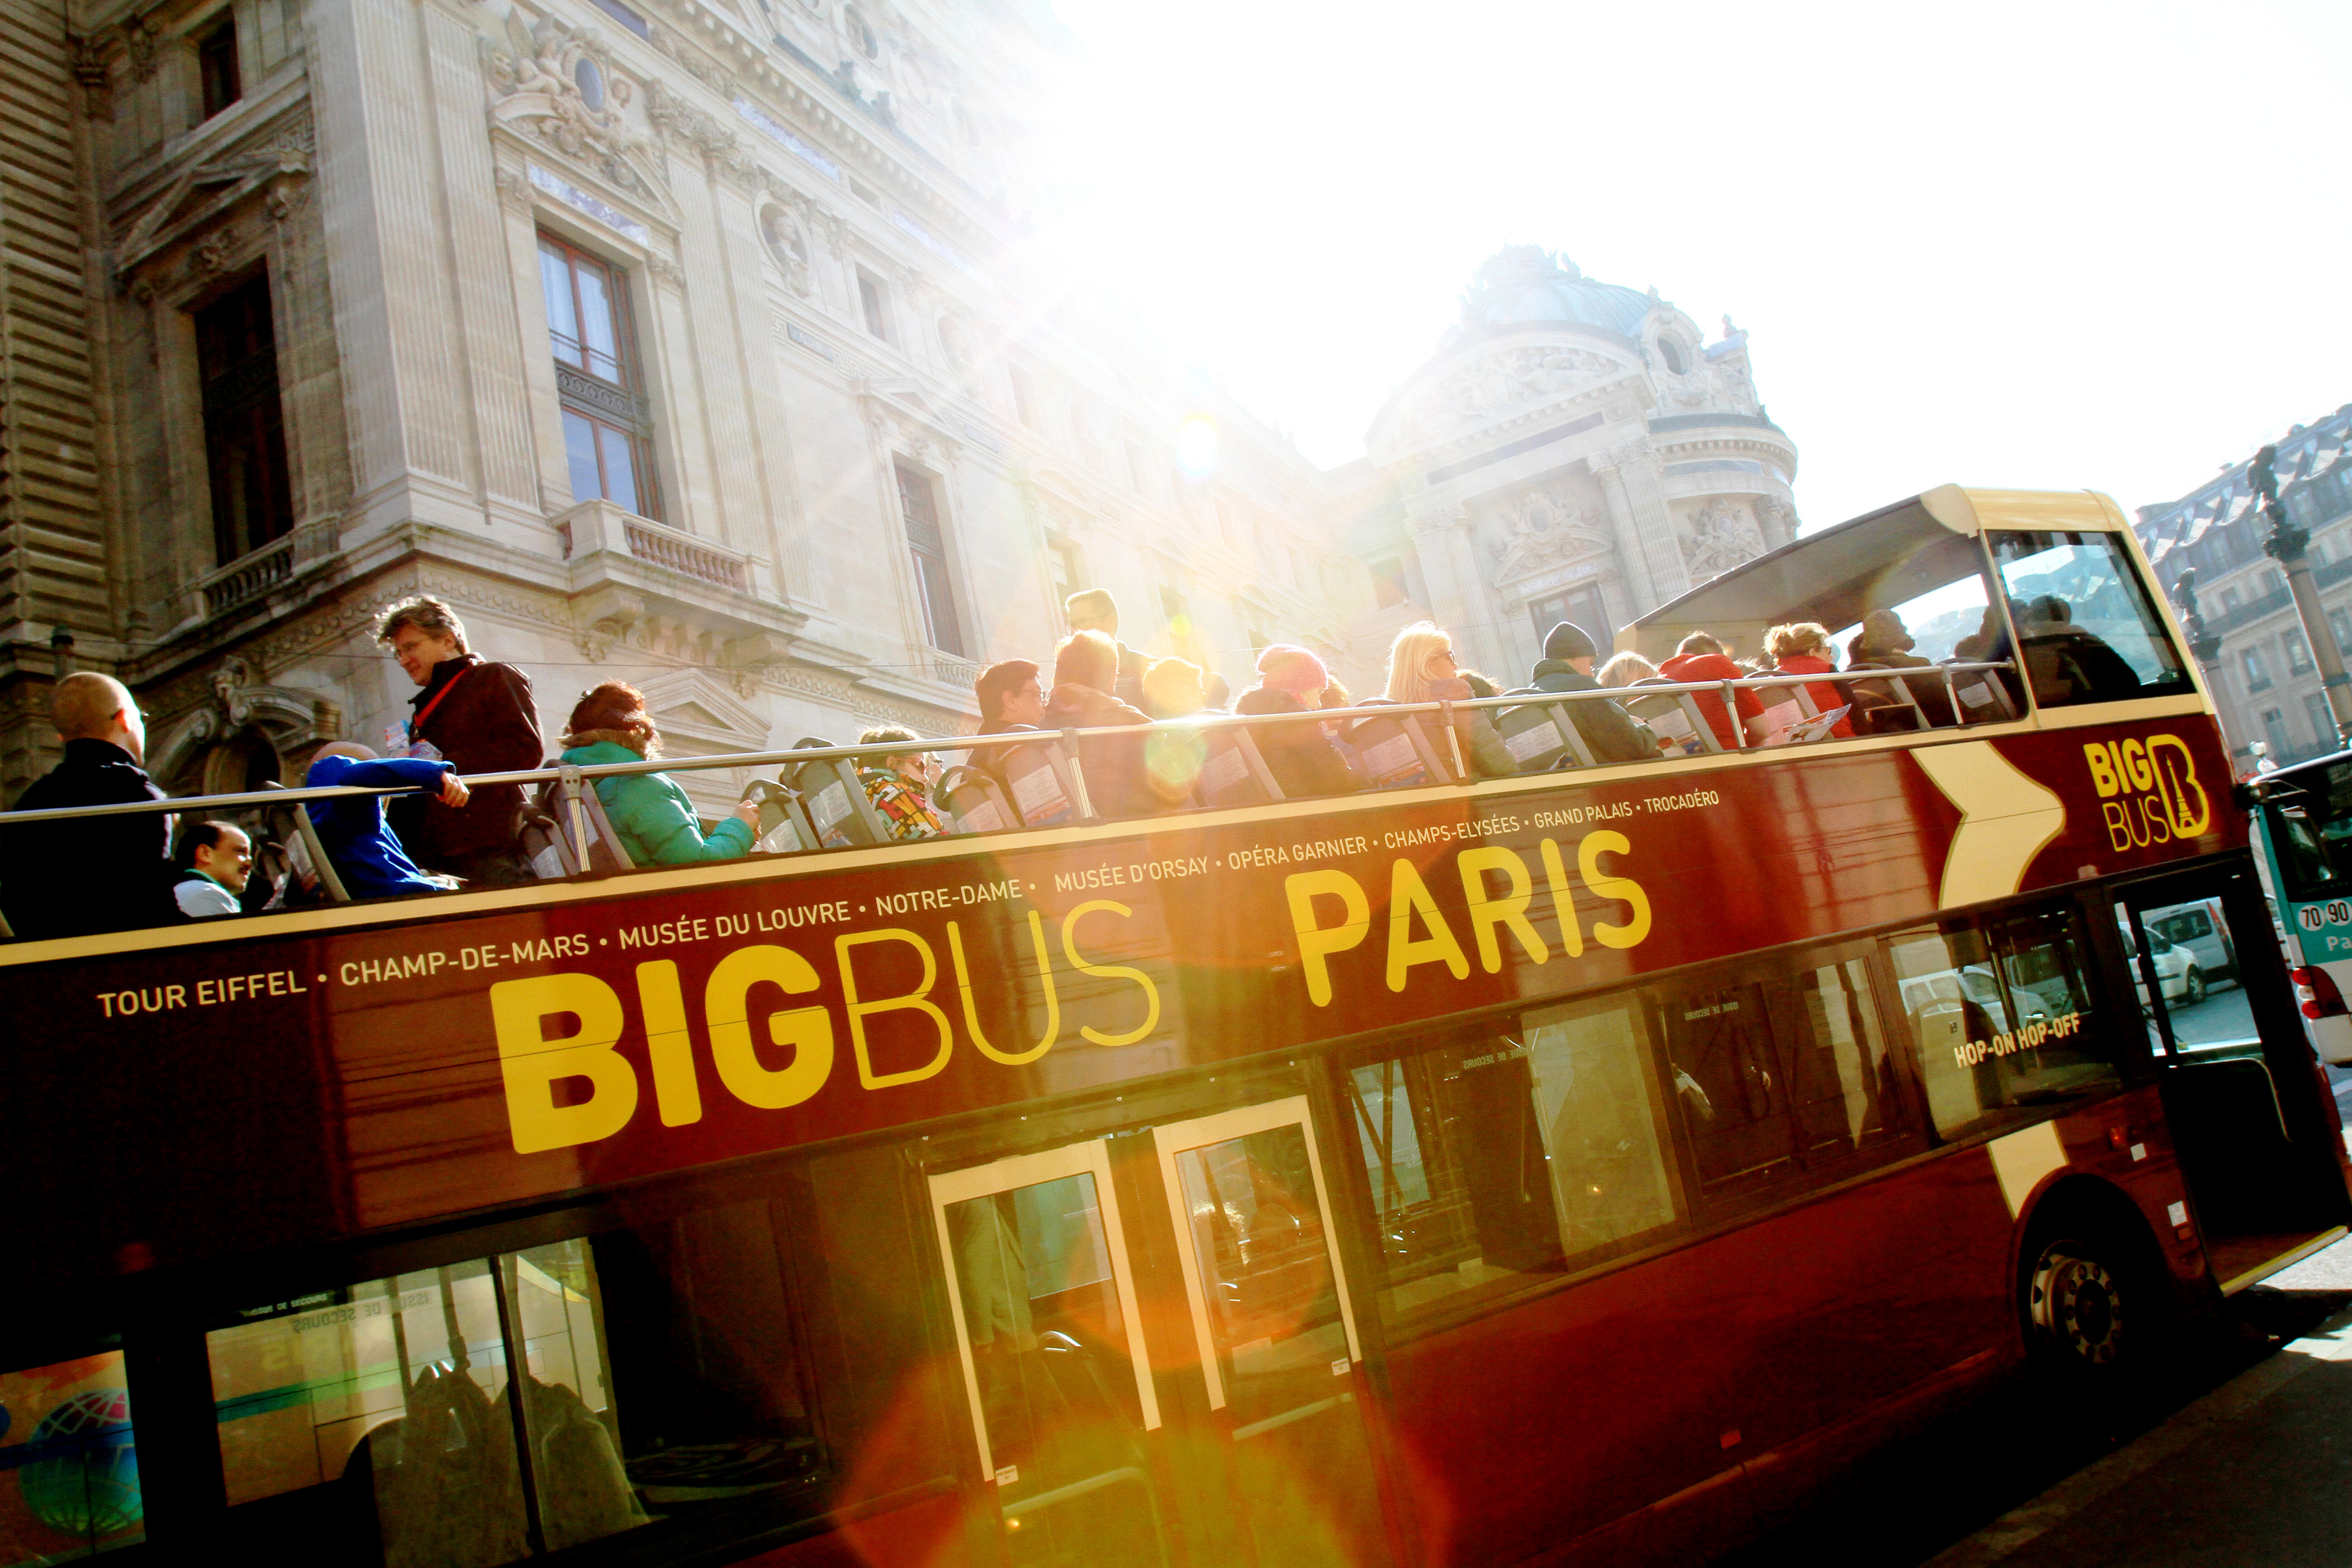 paris-budget-guide-hop-on-hop-off